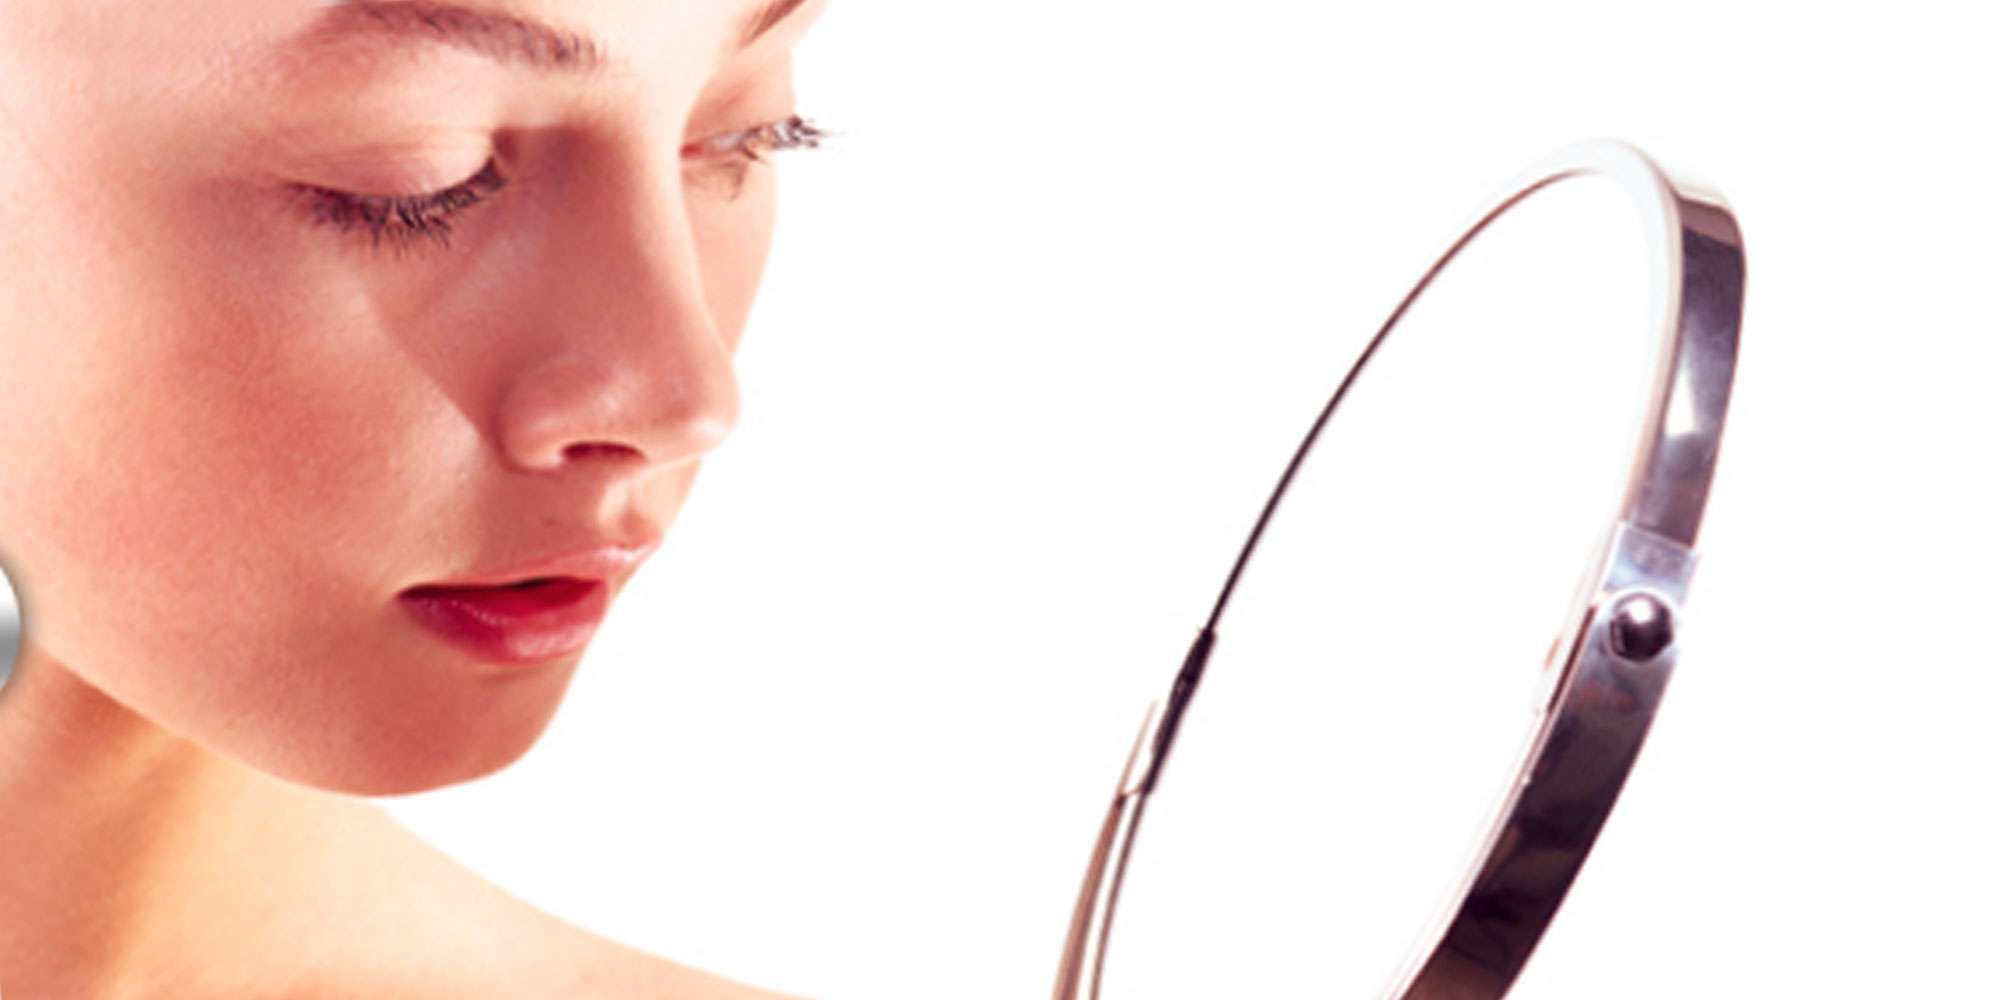 Hair-and-Permanent-Make-up-Best-price-quality-Toronto-GTA